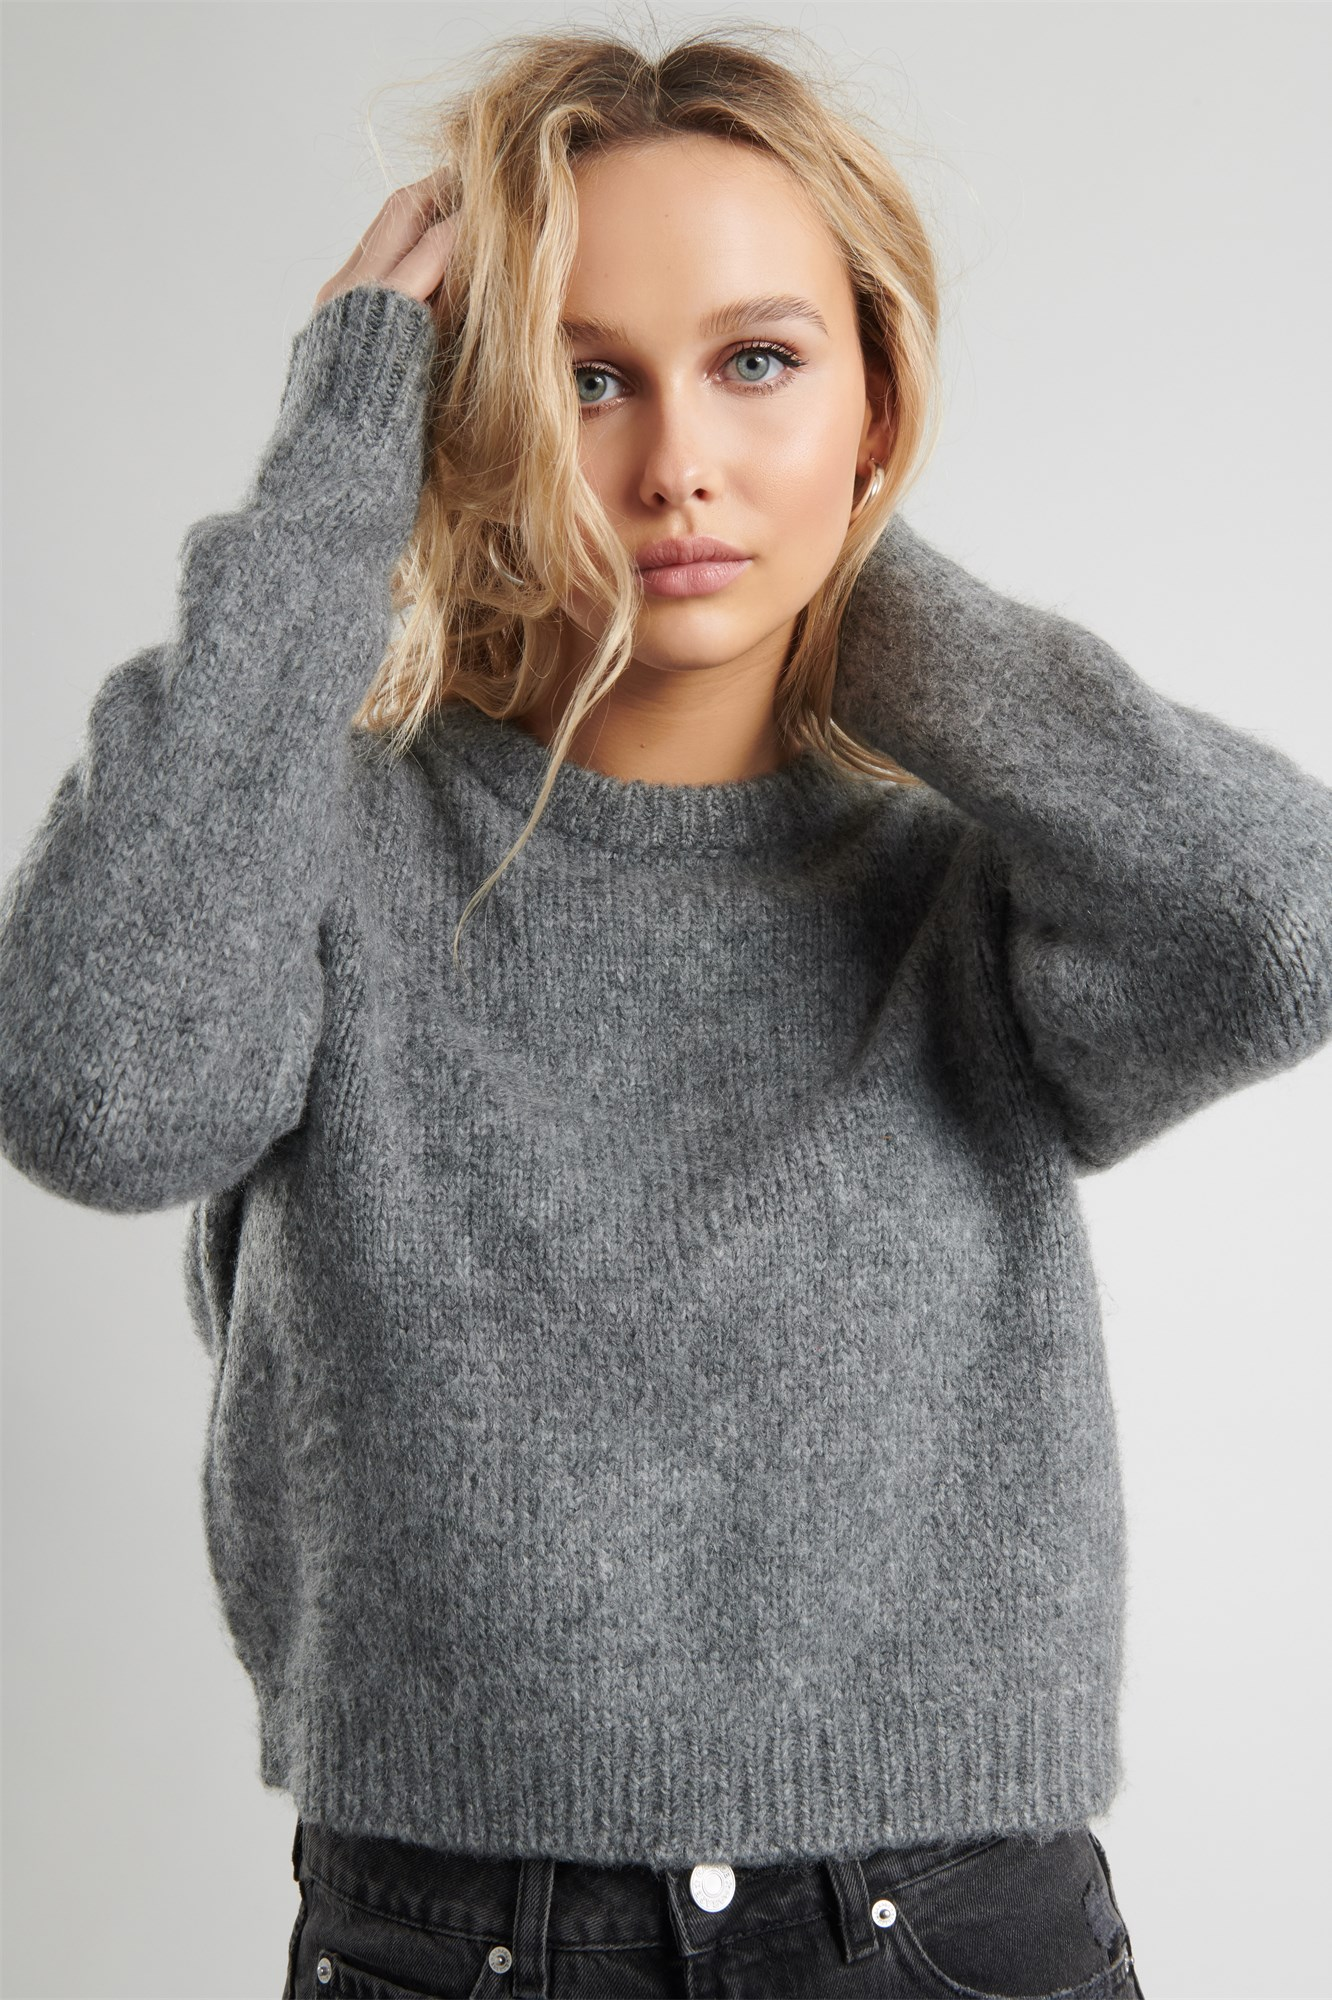 The Cozy Pullover Sweater by Garage